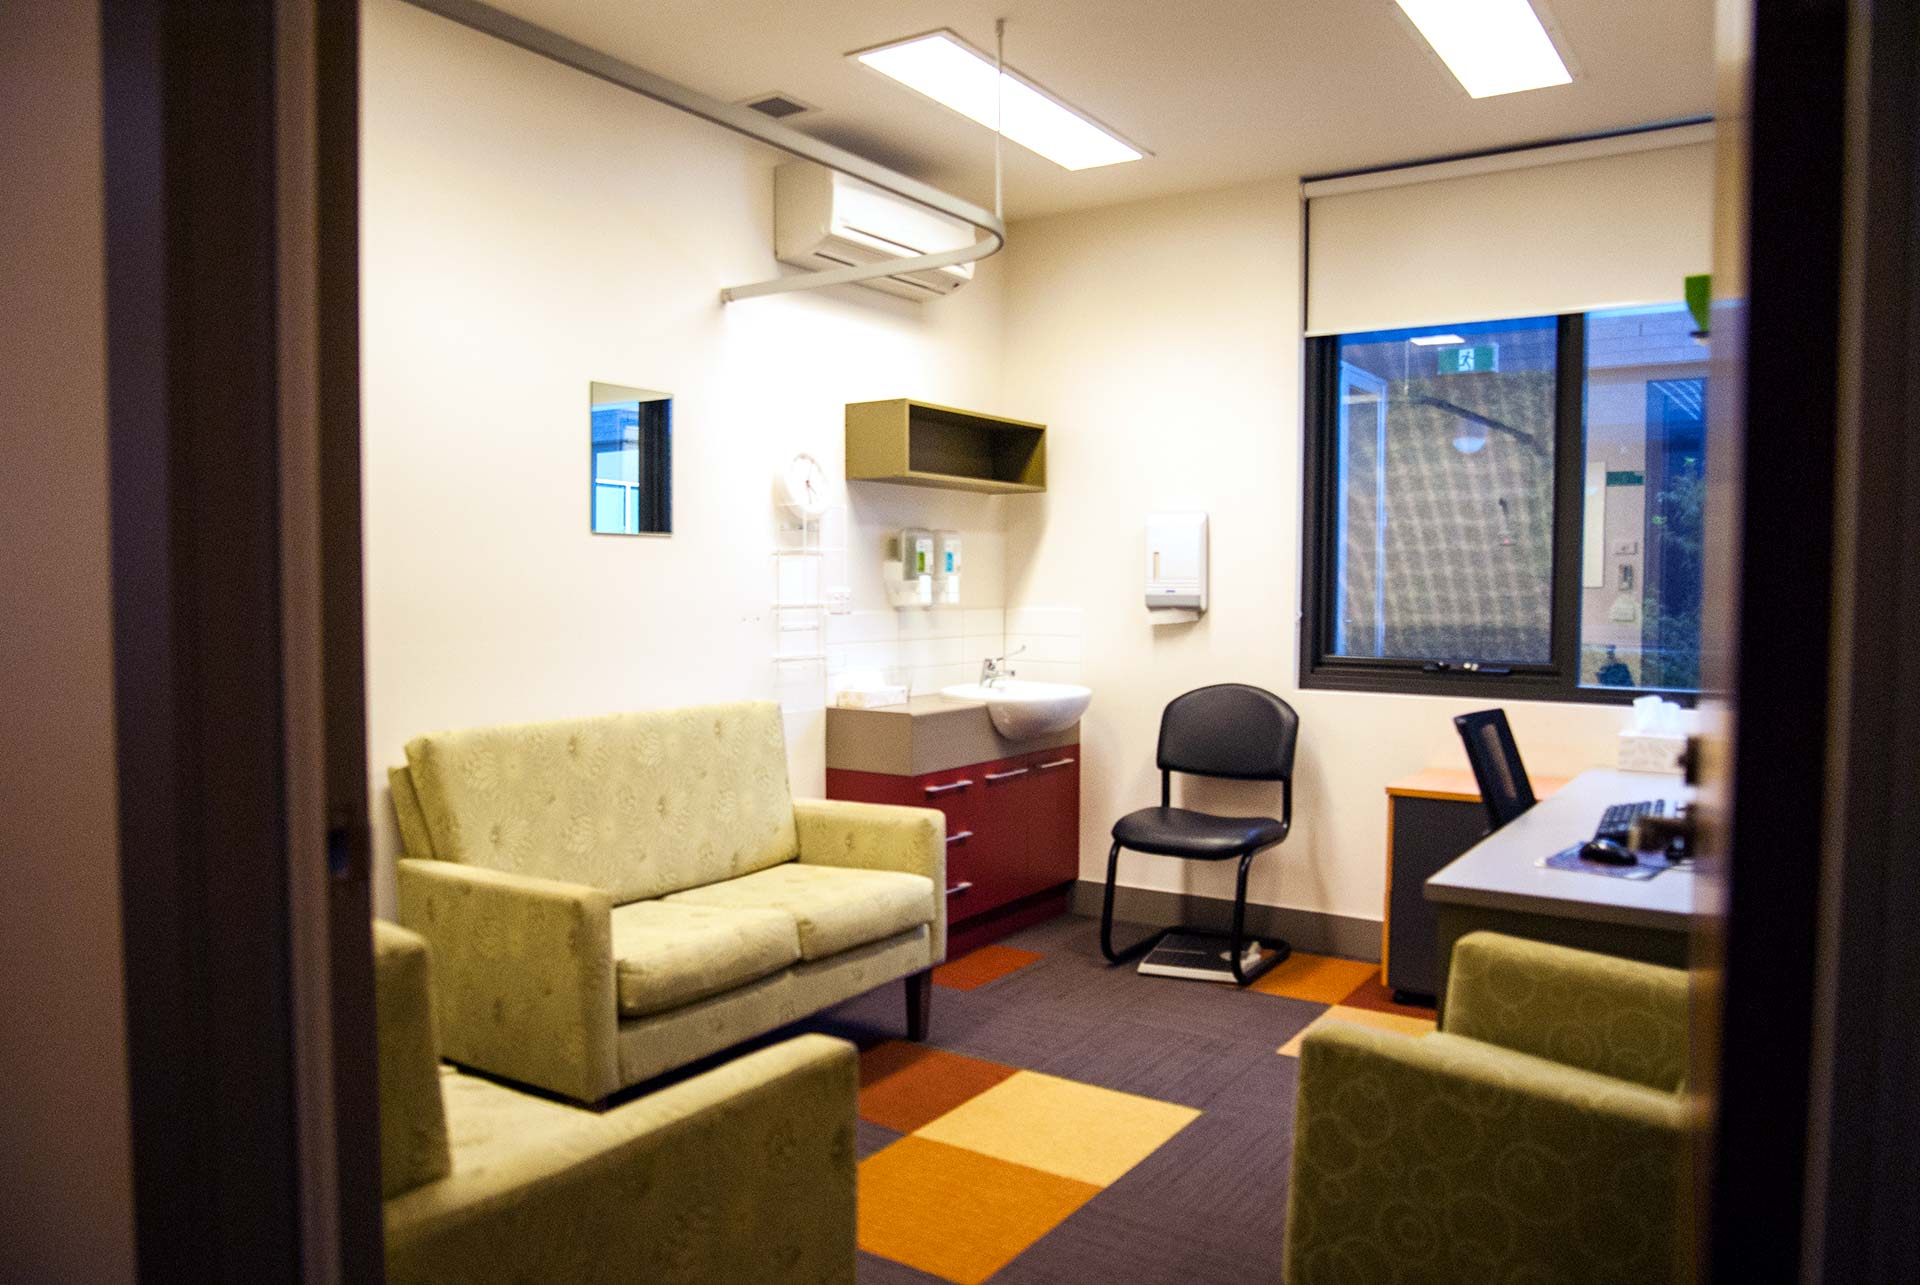 Counselling Office Central Clinic Warragul